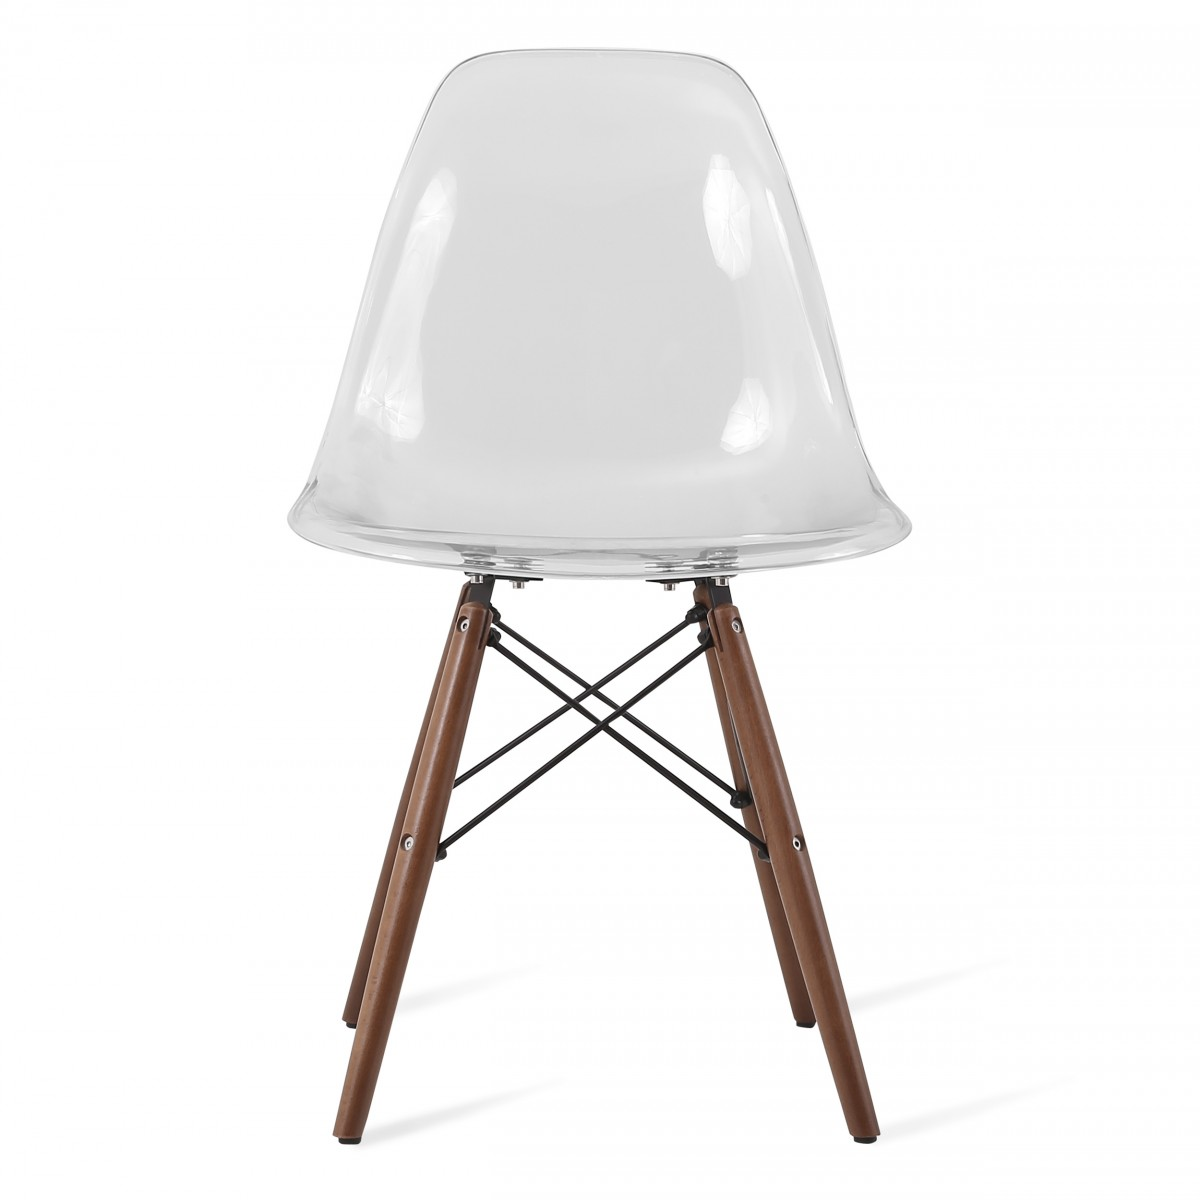 Acrylic Chairs Eames Style Dsw Clear Acrylic Plastic Dining Shell Chair